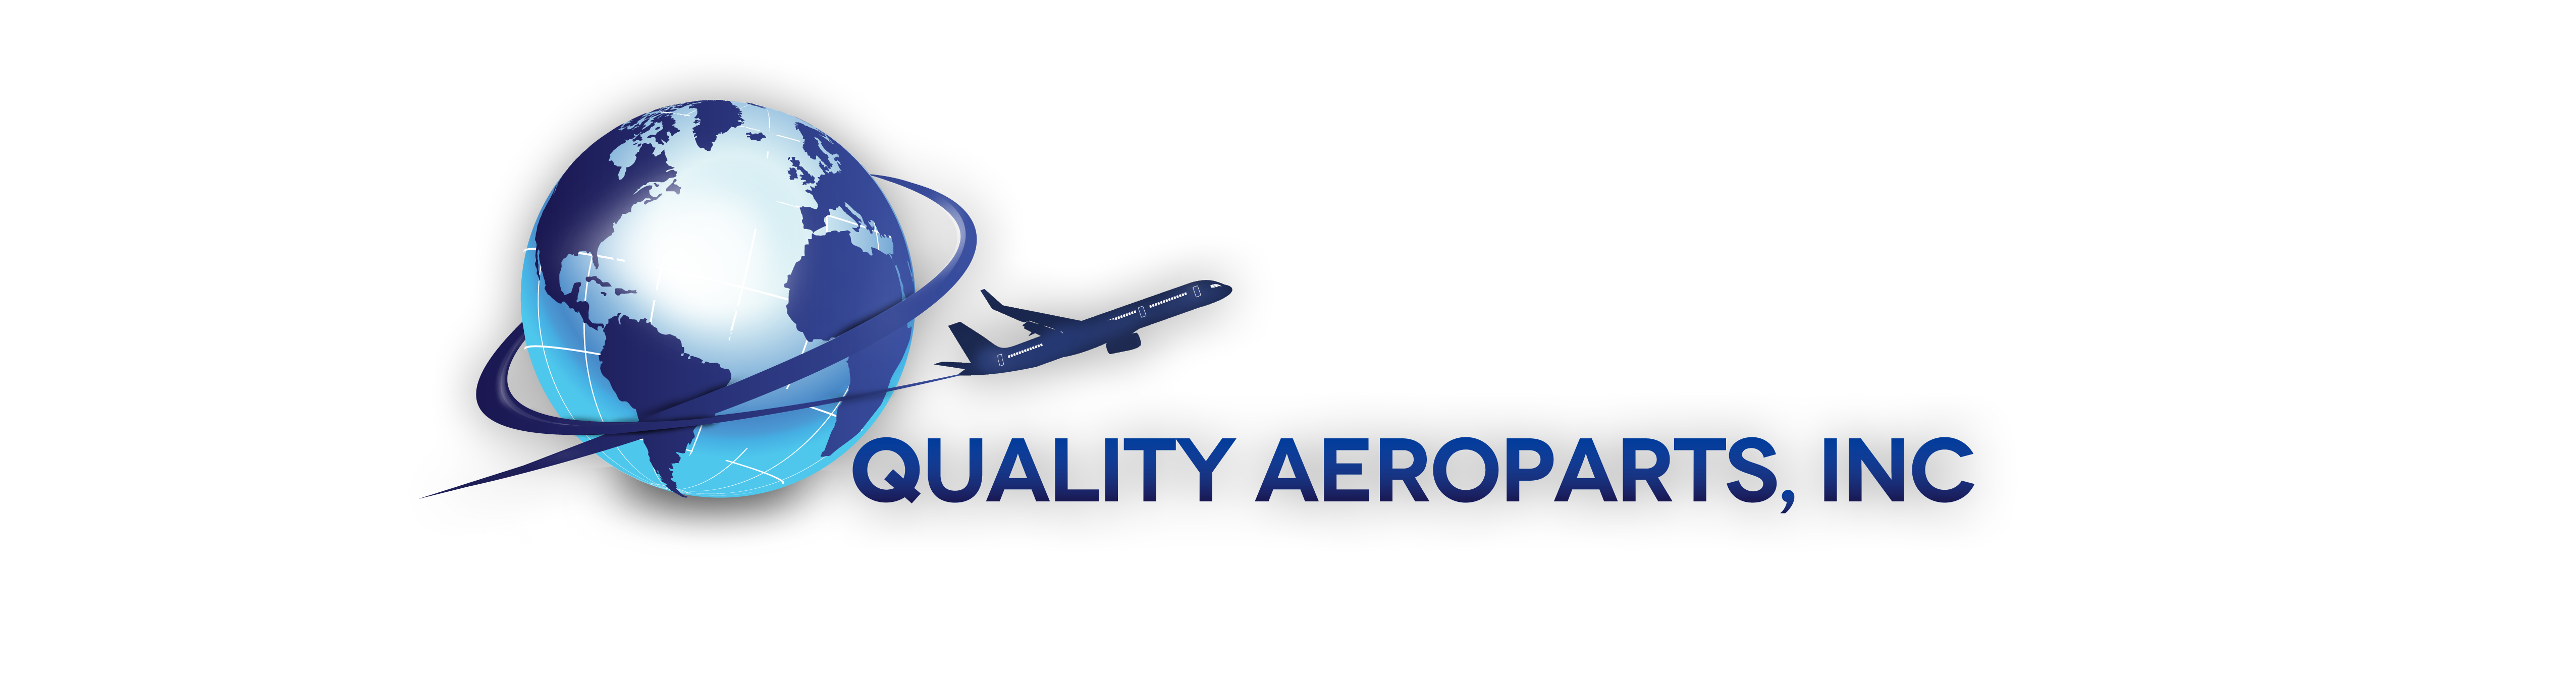 Logo of company QUALITY AEROPARTS INC